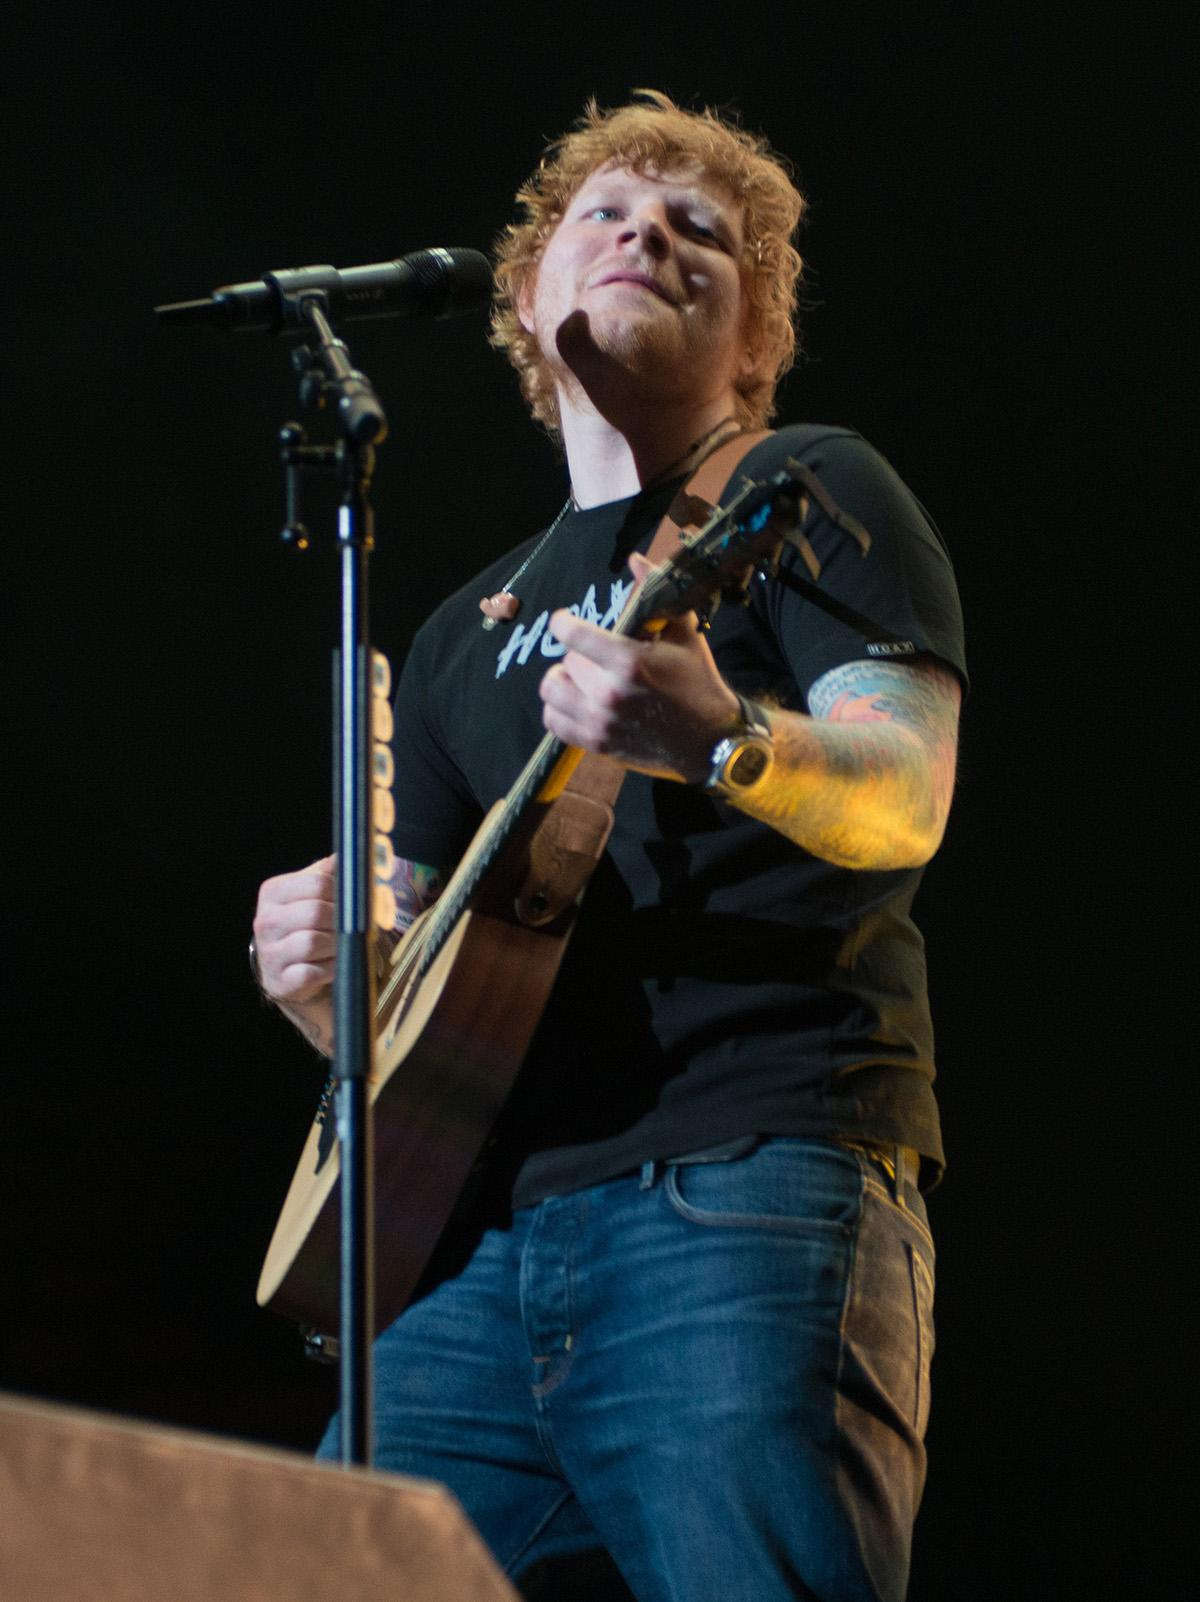 Pop sensation Ed Sheeran played a sold-out show at Portland's Moda Center Sunday, packed with hits that span his three album career. The English singer-songwriter is touring in support of his latest record, 'Divide.' (Photo taken by Tristan Fortsch/KATU News on July 30, 2017)